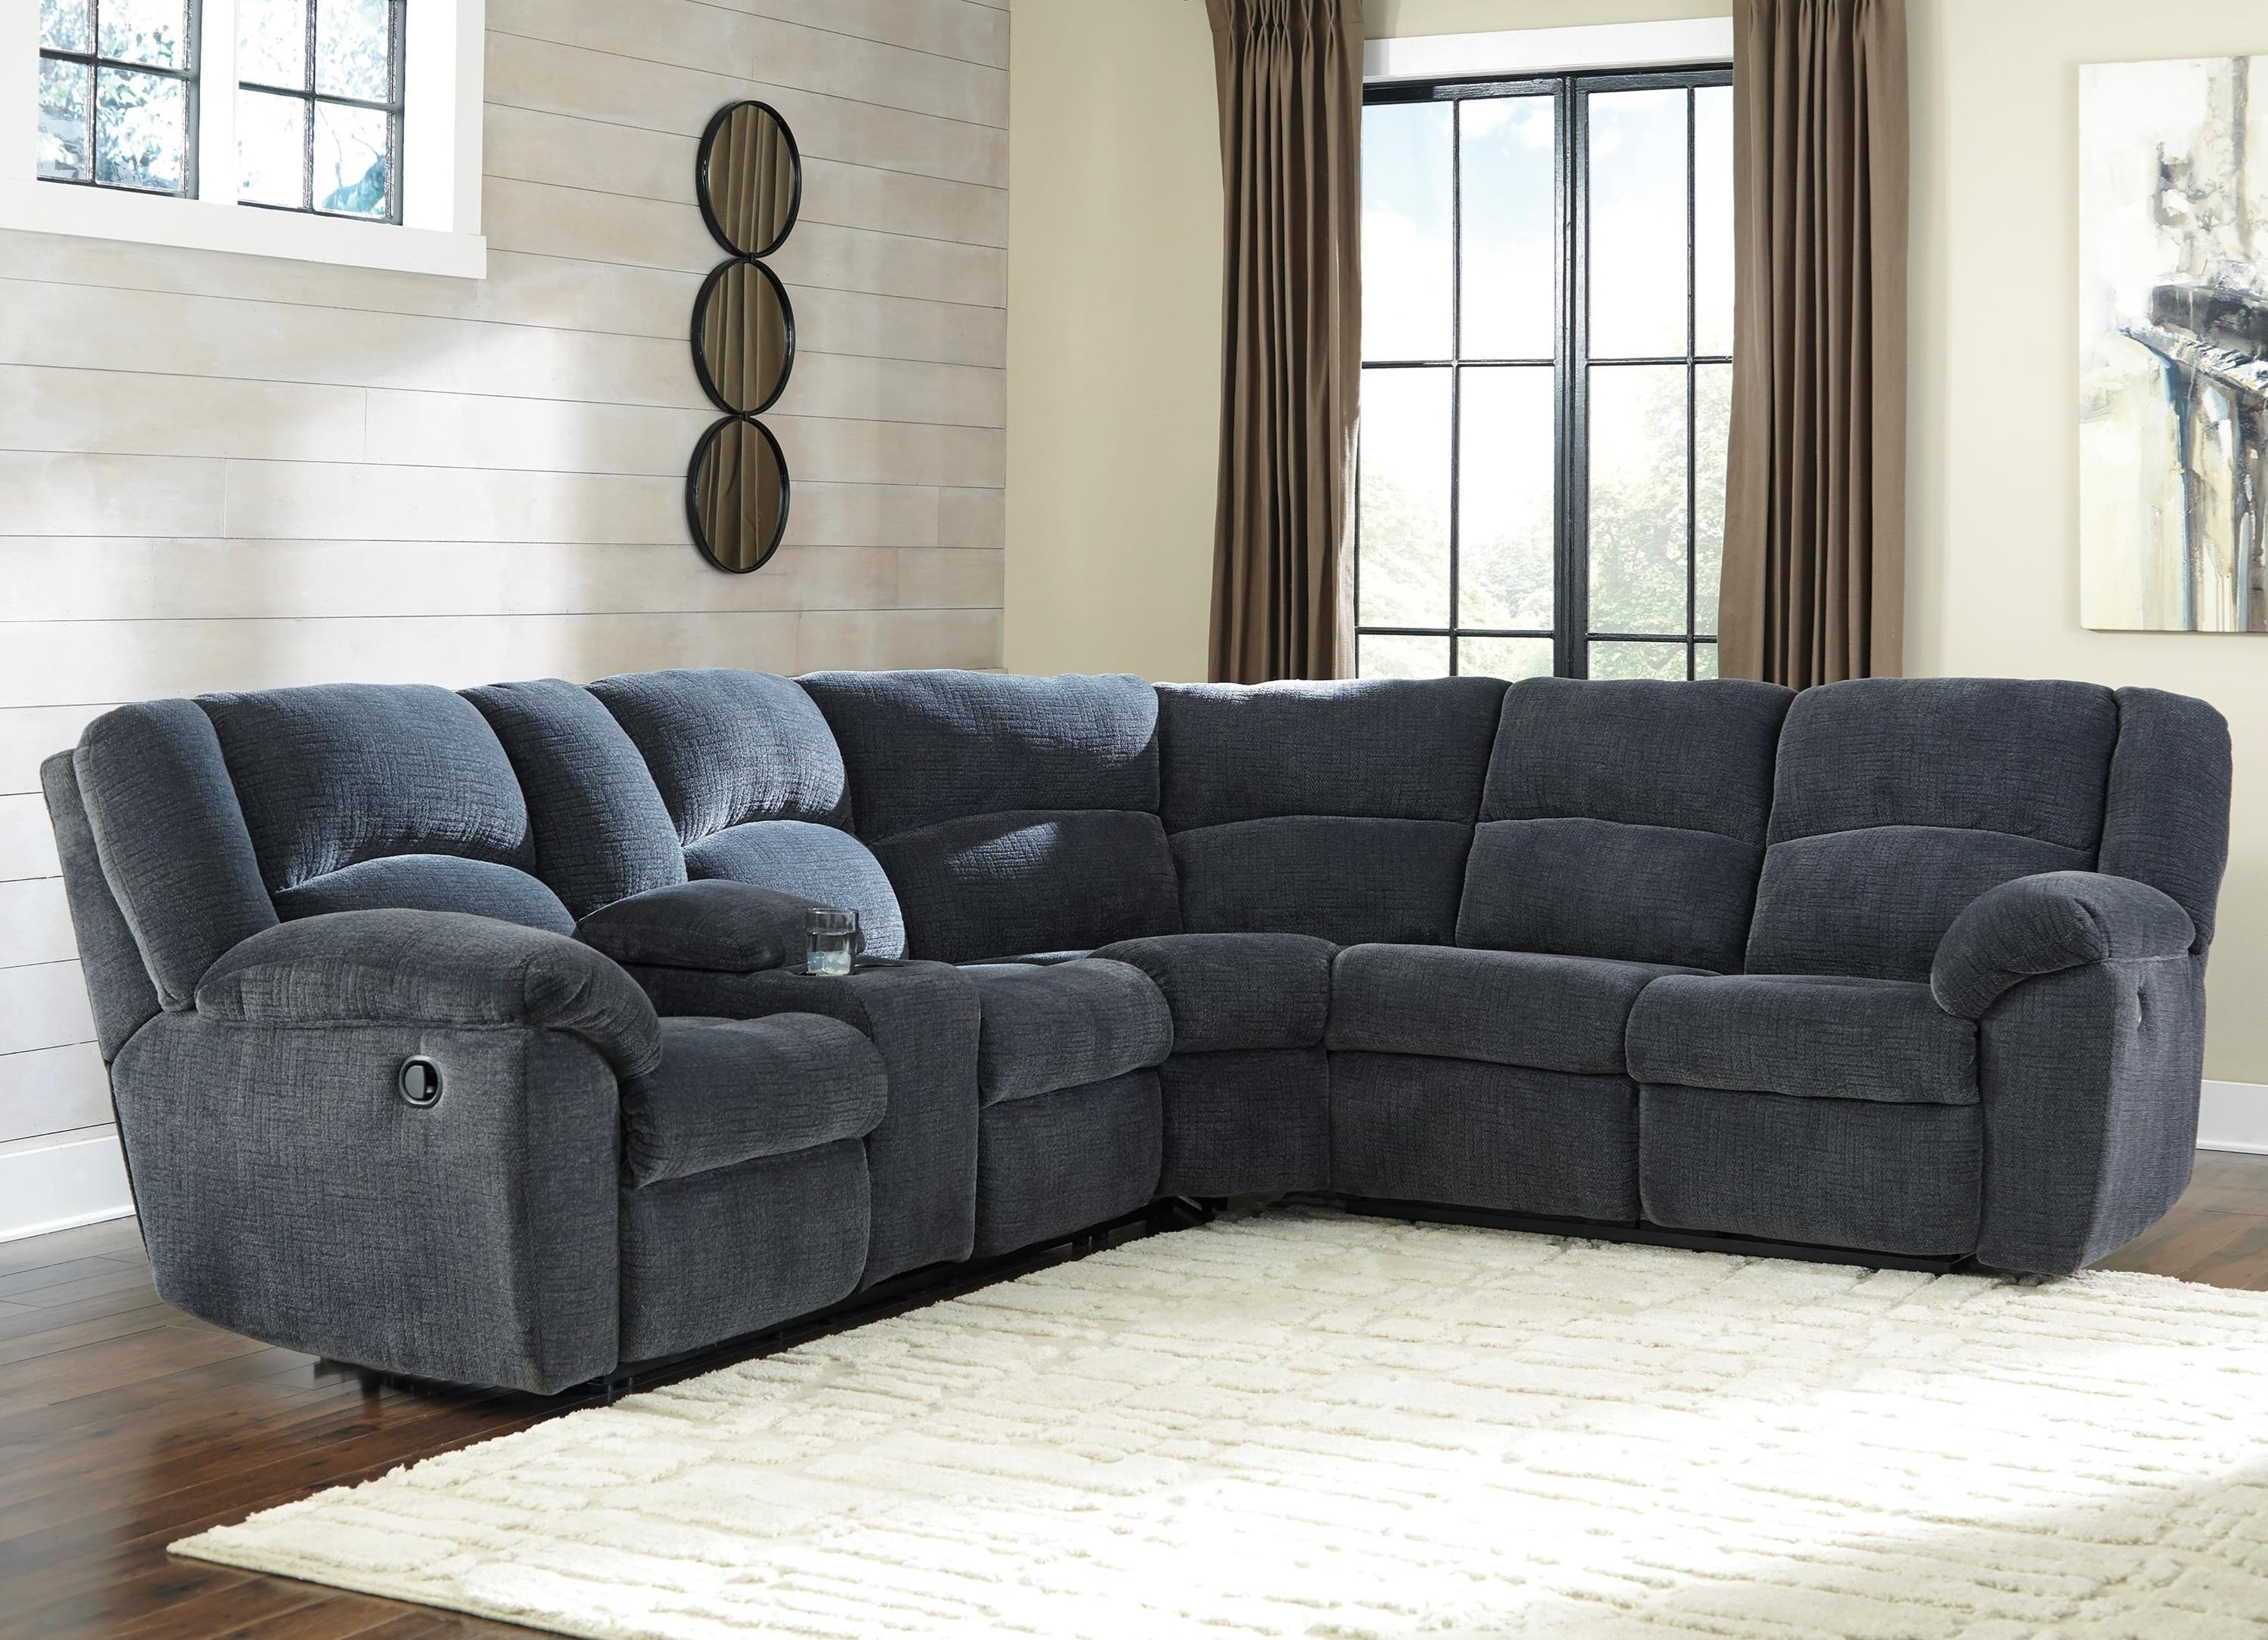 Benchcraft Timpson Reclining Sectional with Storage Console  sc 1 st  Wayside Furniture & Benchcraft Timpson Reclining Sectional with Storage Console ... islam-shia.org